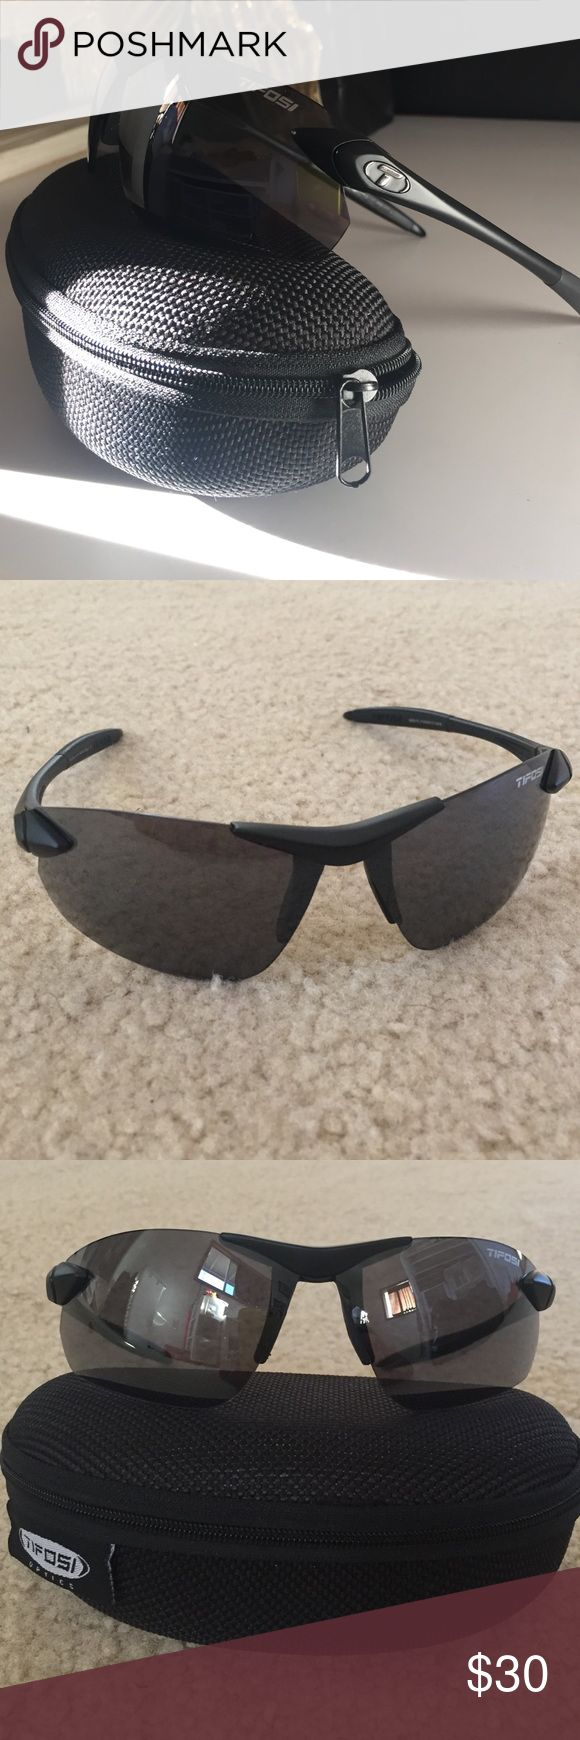 Tifosi Sunglasses Was supposed to be used for my daughter's sport but doesn't like it..sunglasses comes with case.. Rubber ends of sunglasses for grib and by nose area. No scratches, slight mirror reflection on lens, no cloth cleaner... Tifosi Accessories Glasses